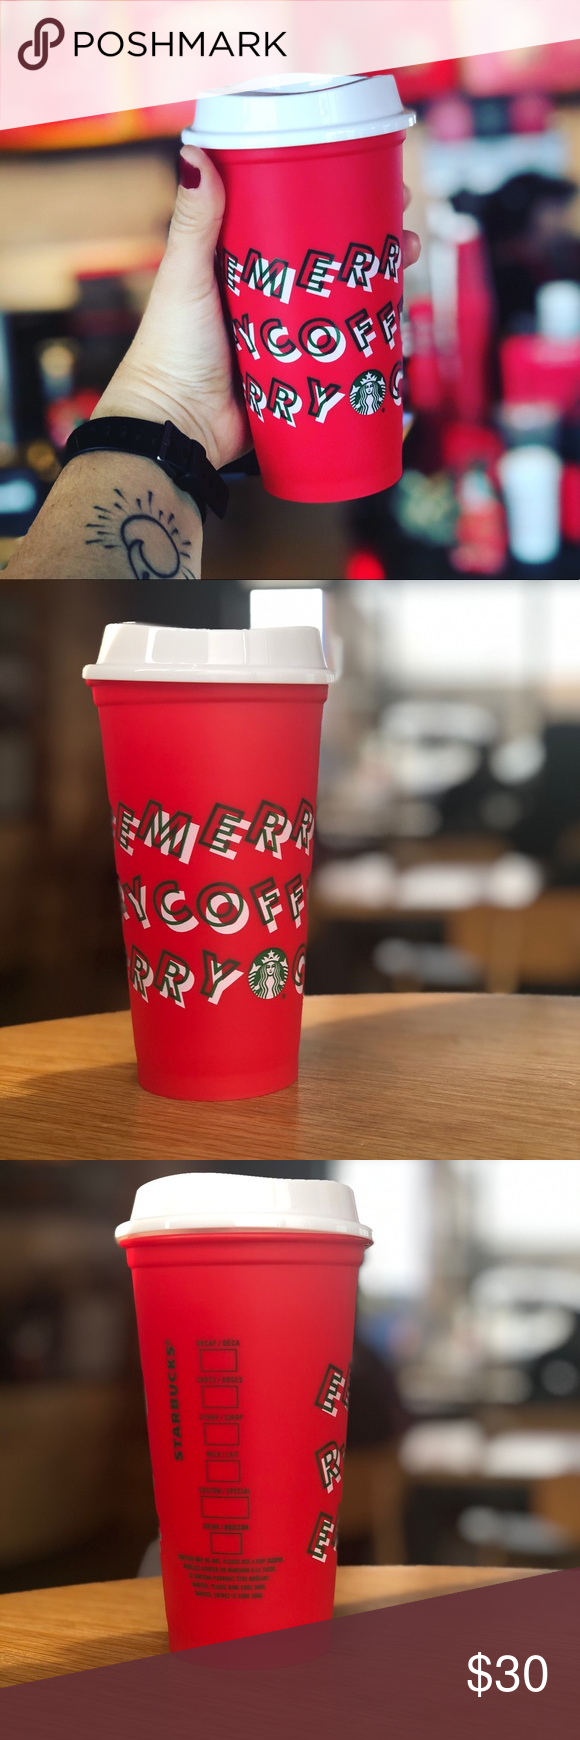 "Starbucks Holiday reusable Red cup +drink discount ""Merry"